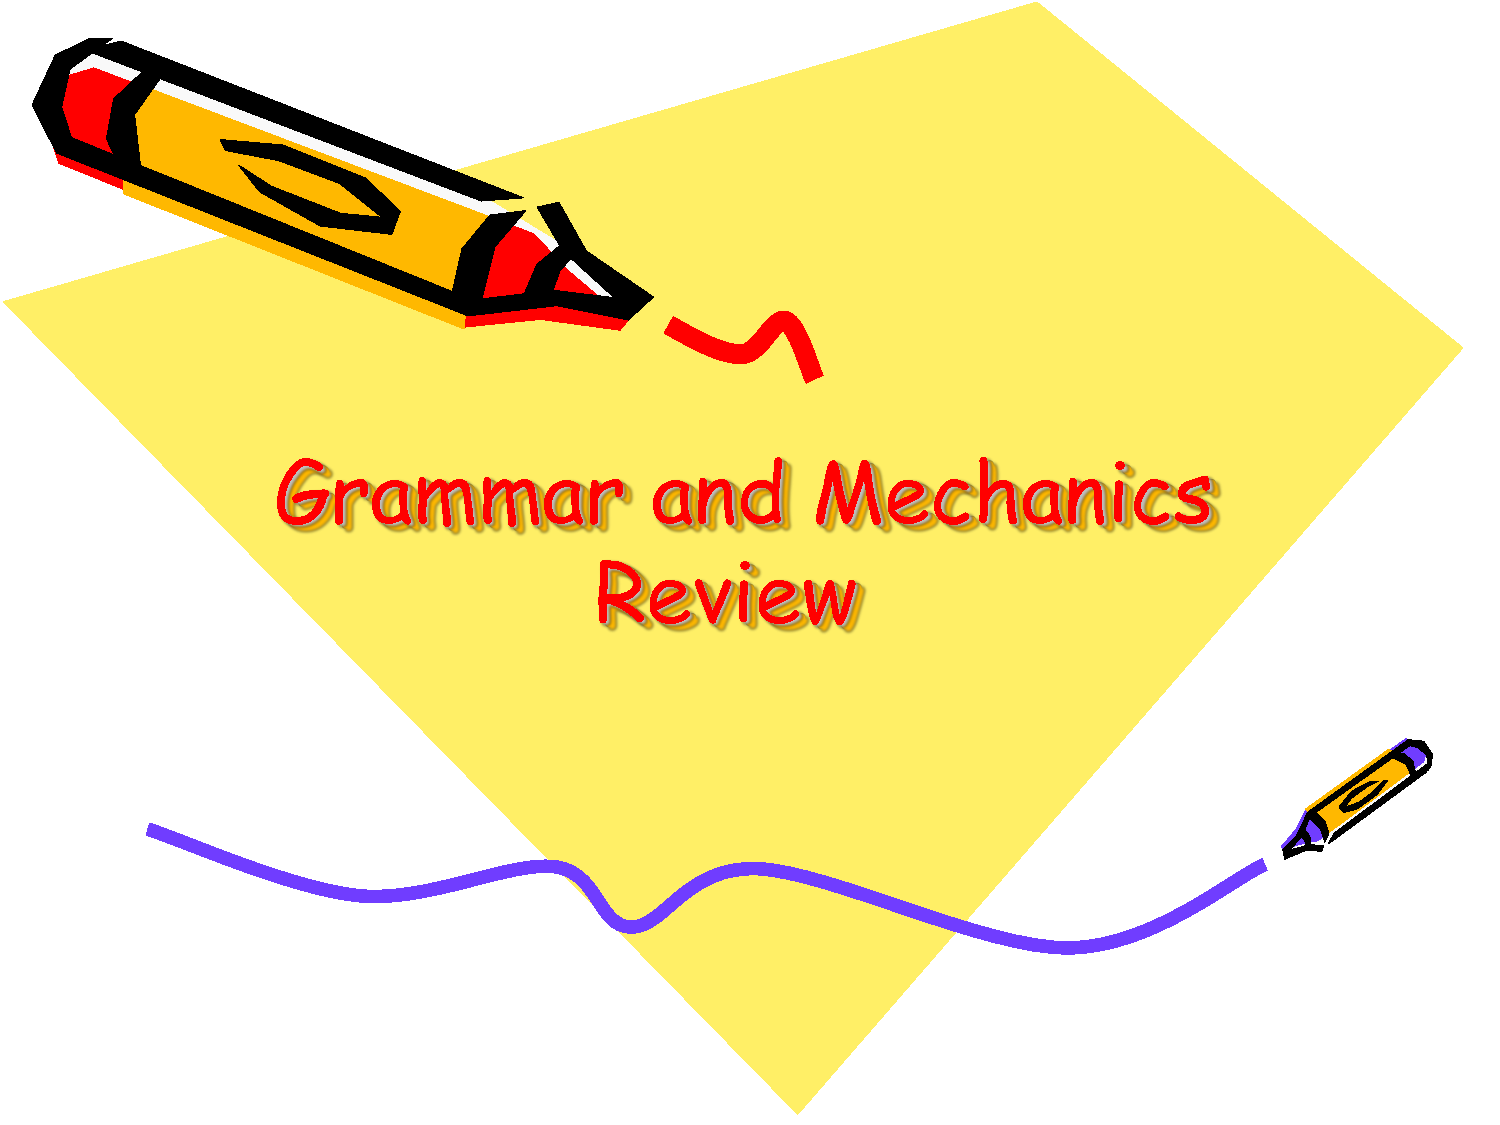 Grammar & Mechanics Review